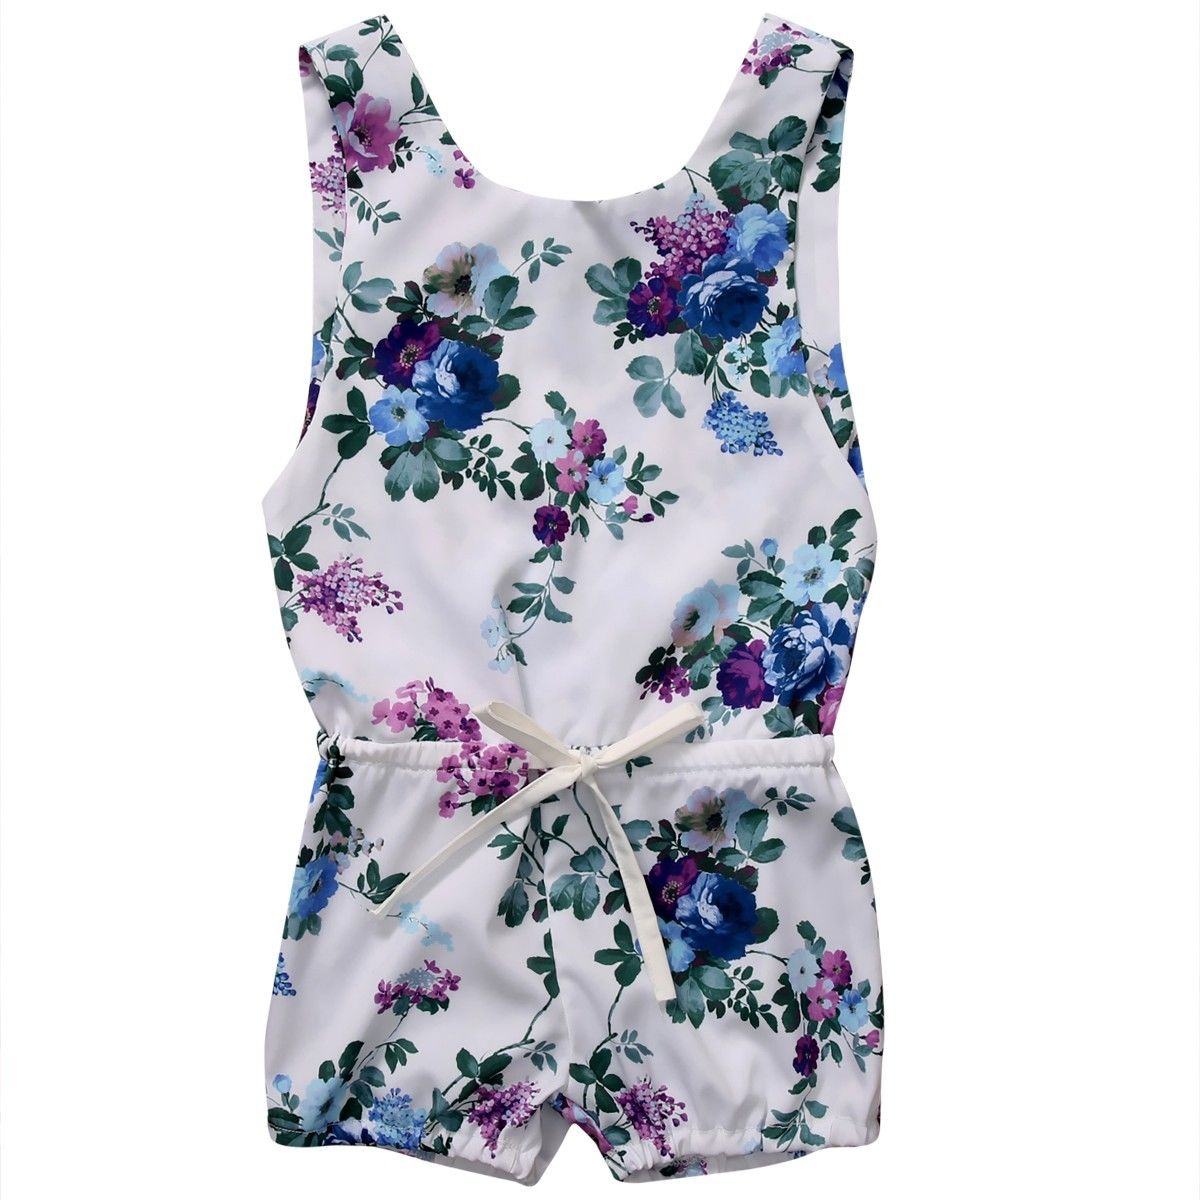 2017 Summer Newborn Toddler Baby Girls Romper Floral Backless Romper Jumpsuit One-pieces Sunsuit Clothes 0-4Y newborn infant baby girl clothes strap lace floral romper jumpsuit outfit summer cotton backless one pieces outfit baby onesie